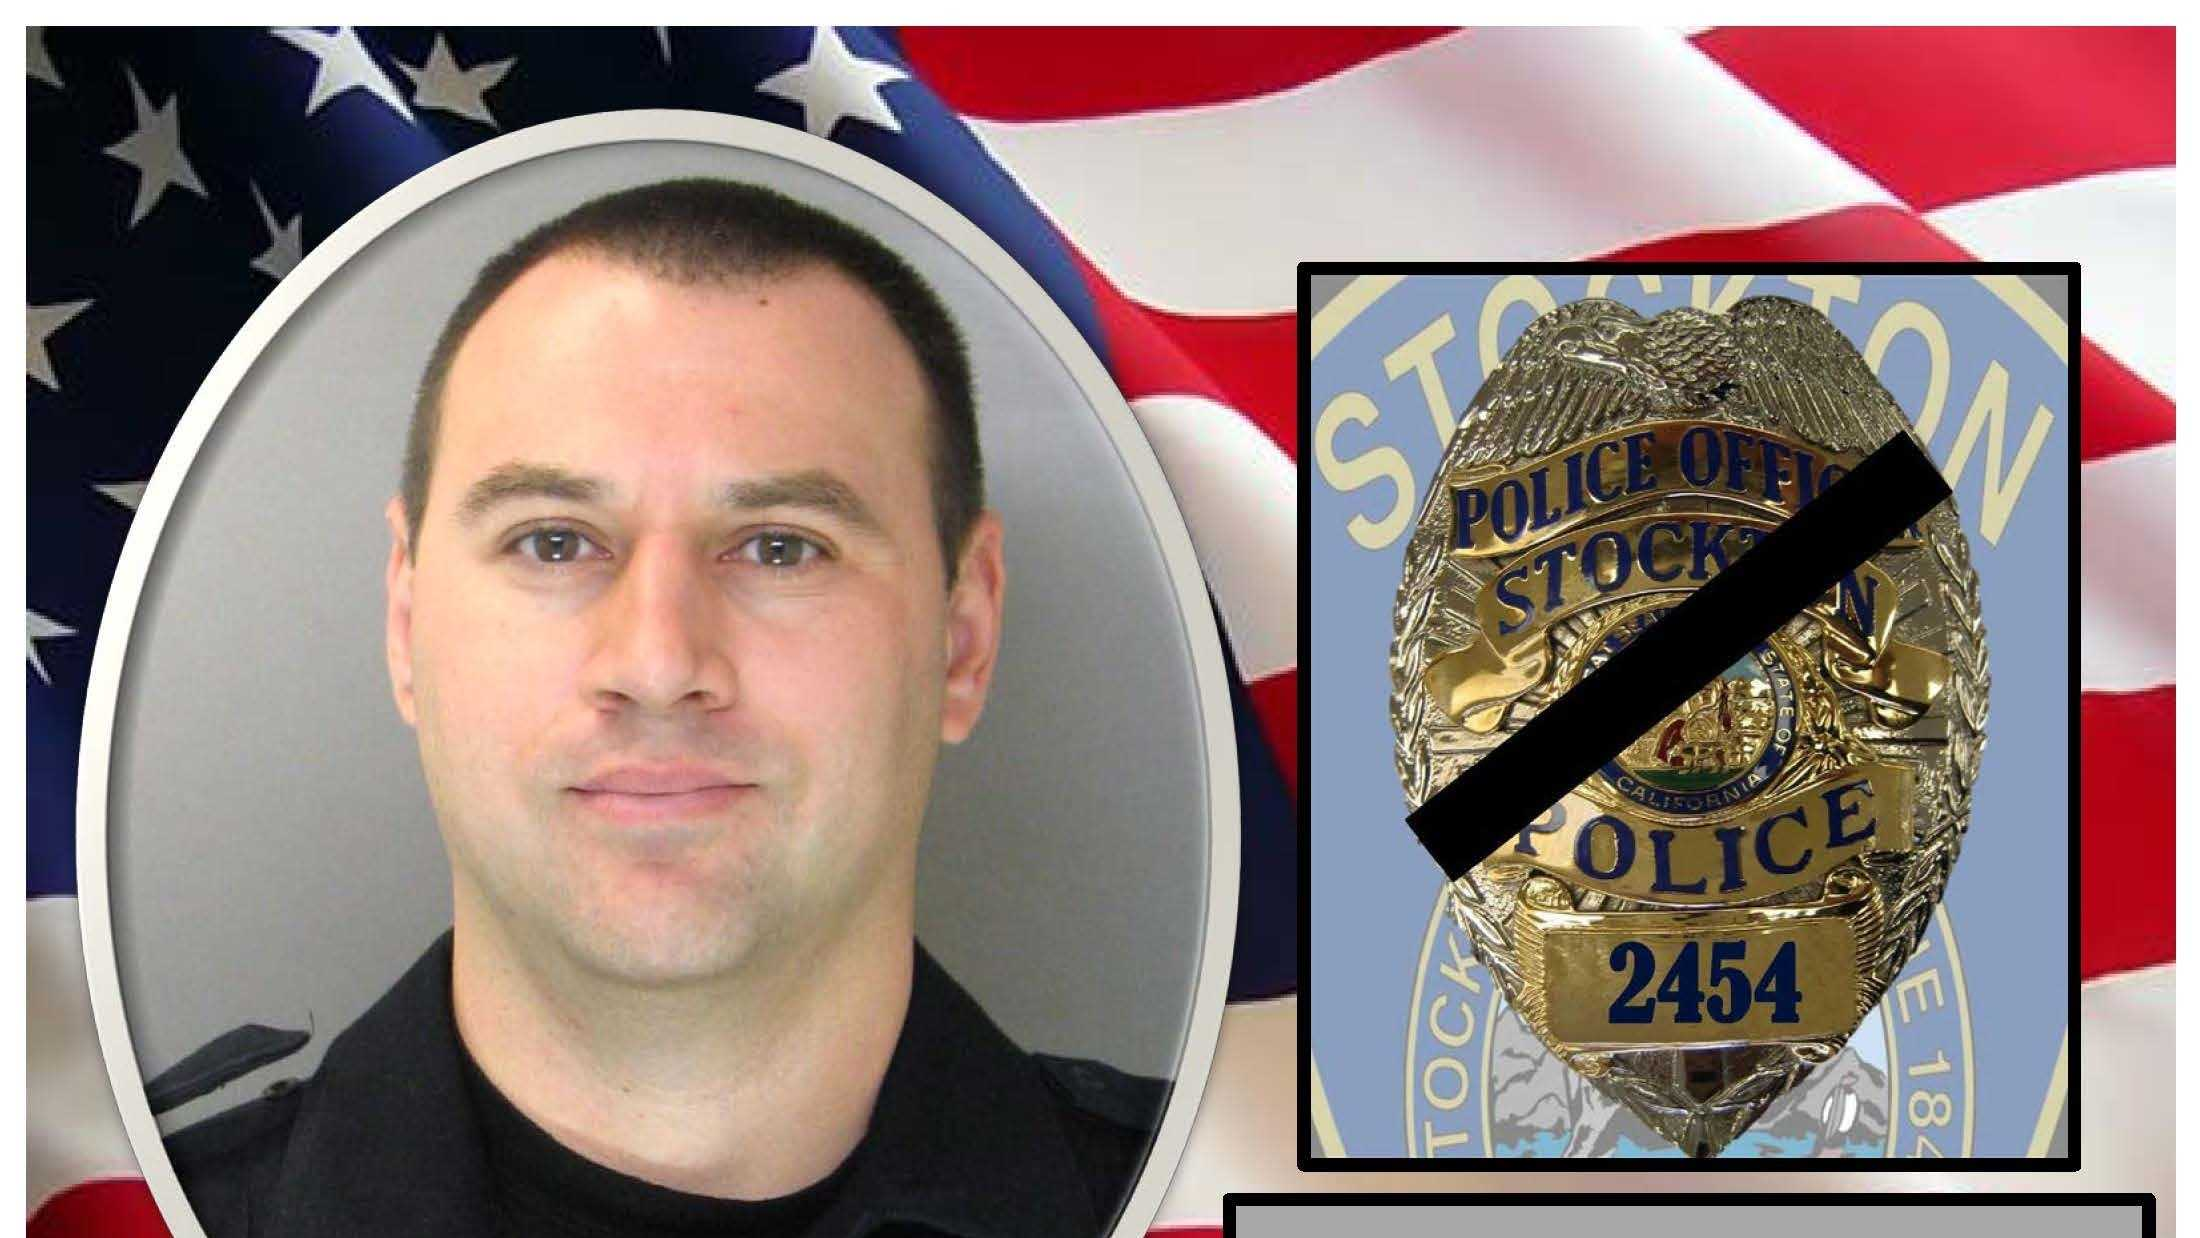 Officer Scott Hewell (June 11, 2014)